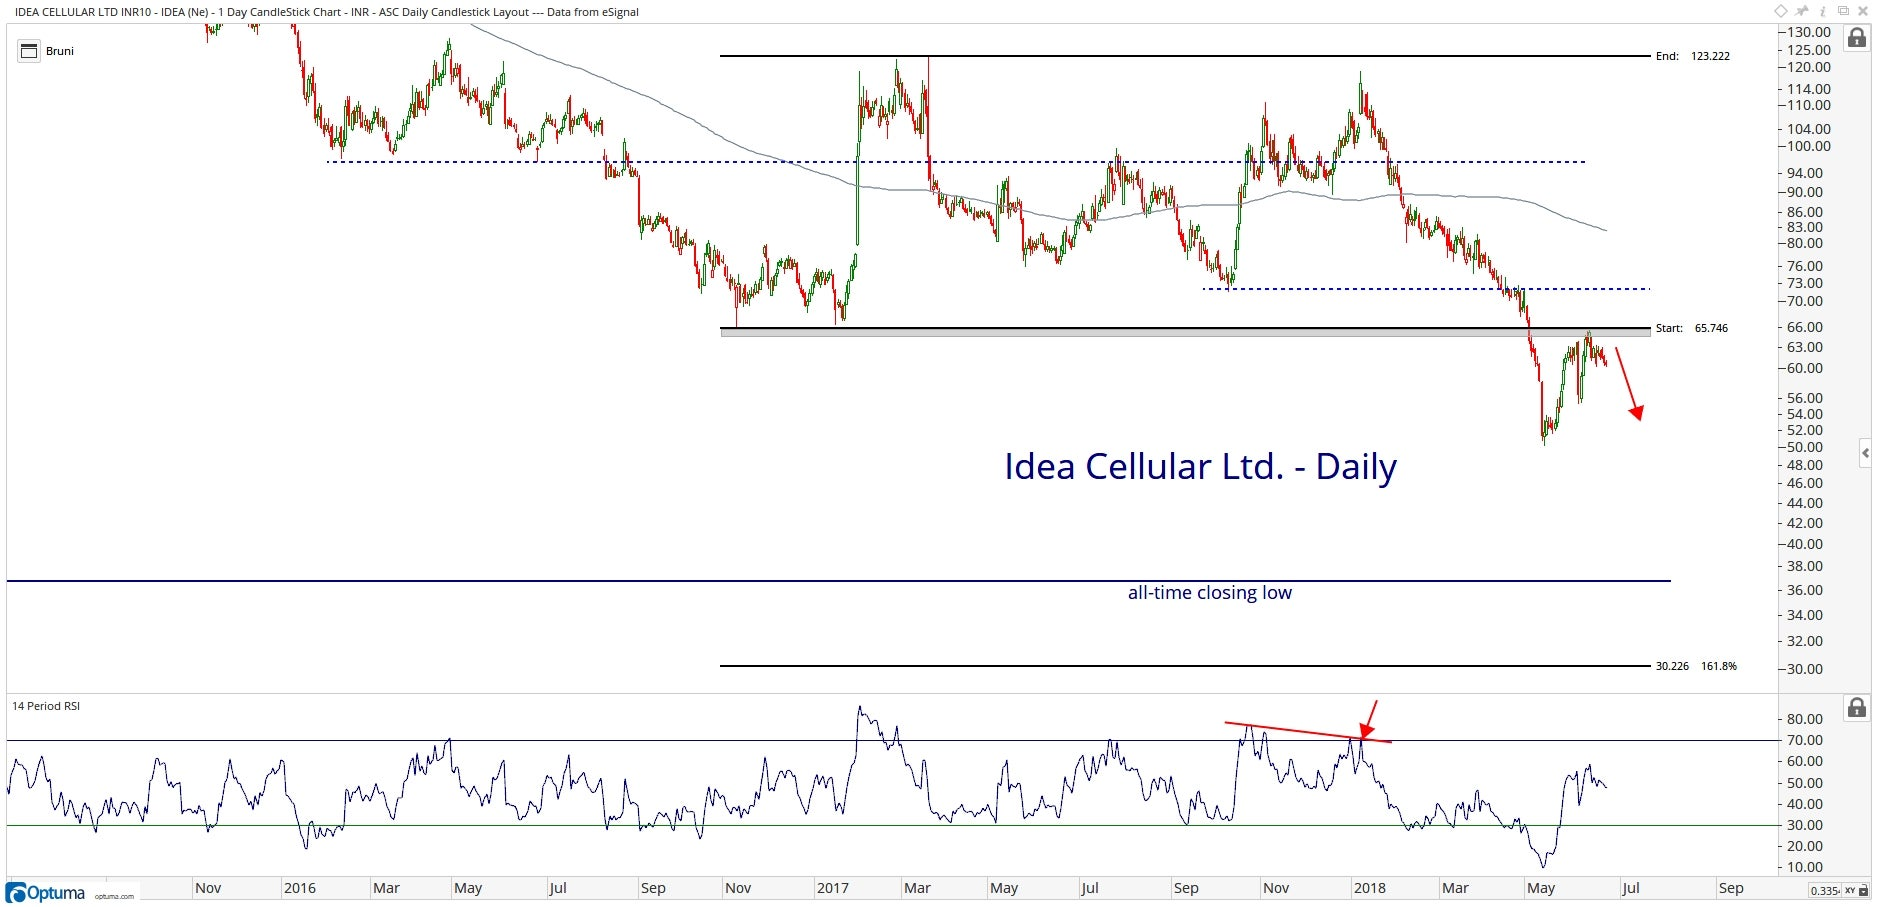 Technical chart showing the performance of Idea Cellular Limited (IDEA.BO) stock